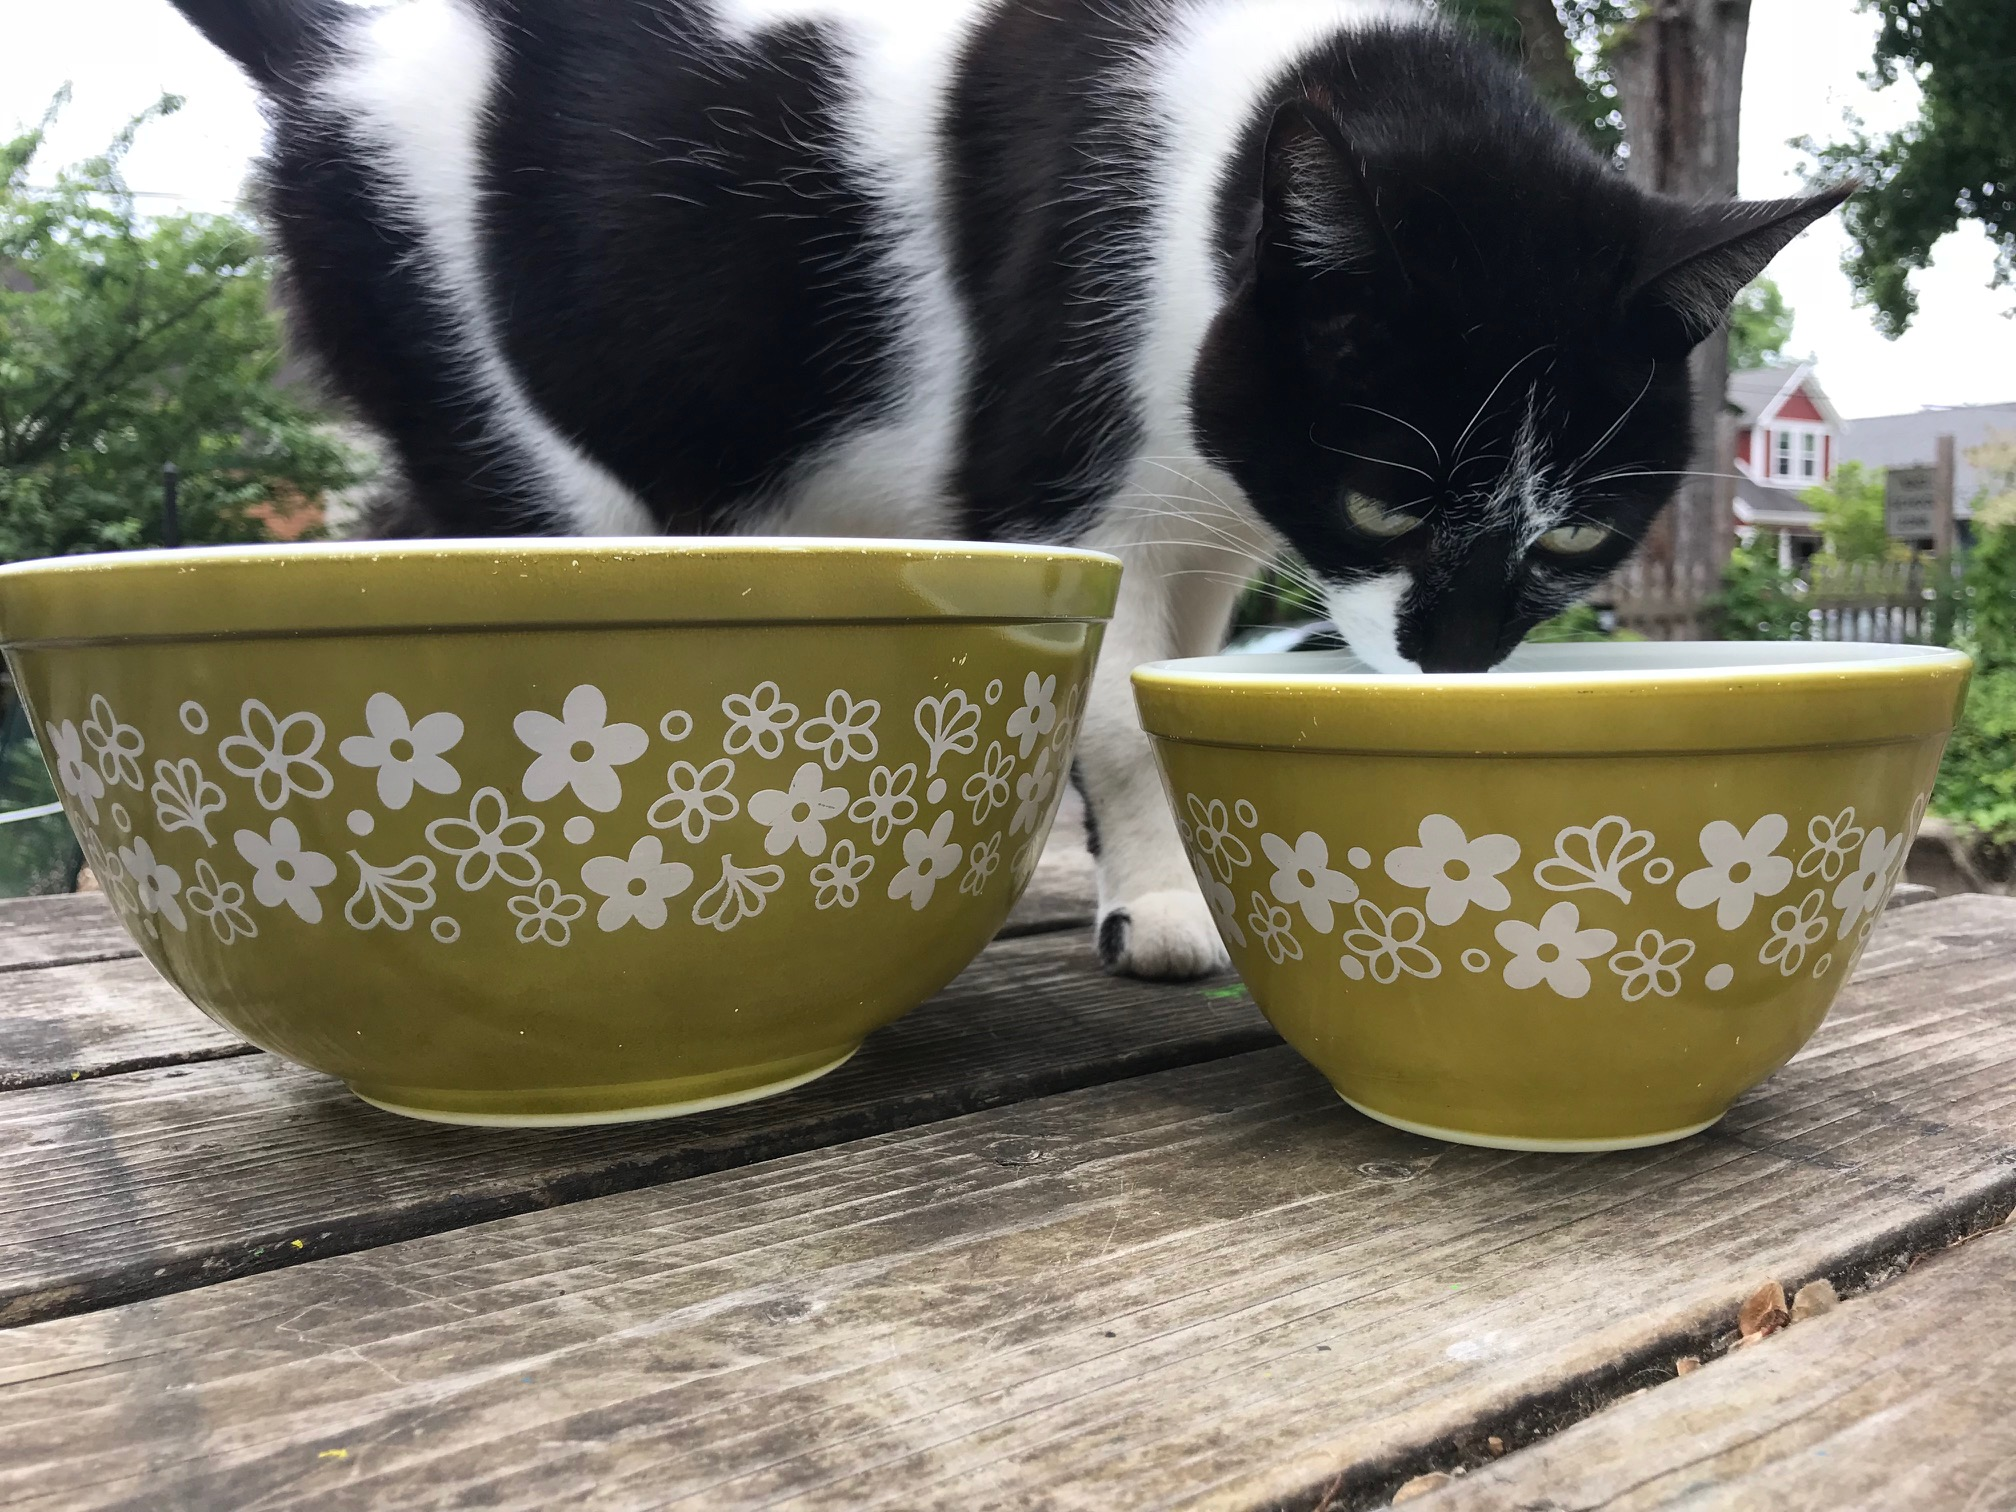 Vintage Pyrex Spring Blossom Green Crazy Daisy Mixing Bowls: 109,900 ppm Lead